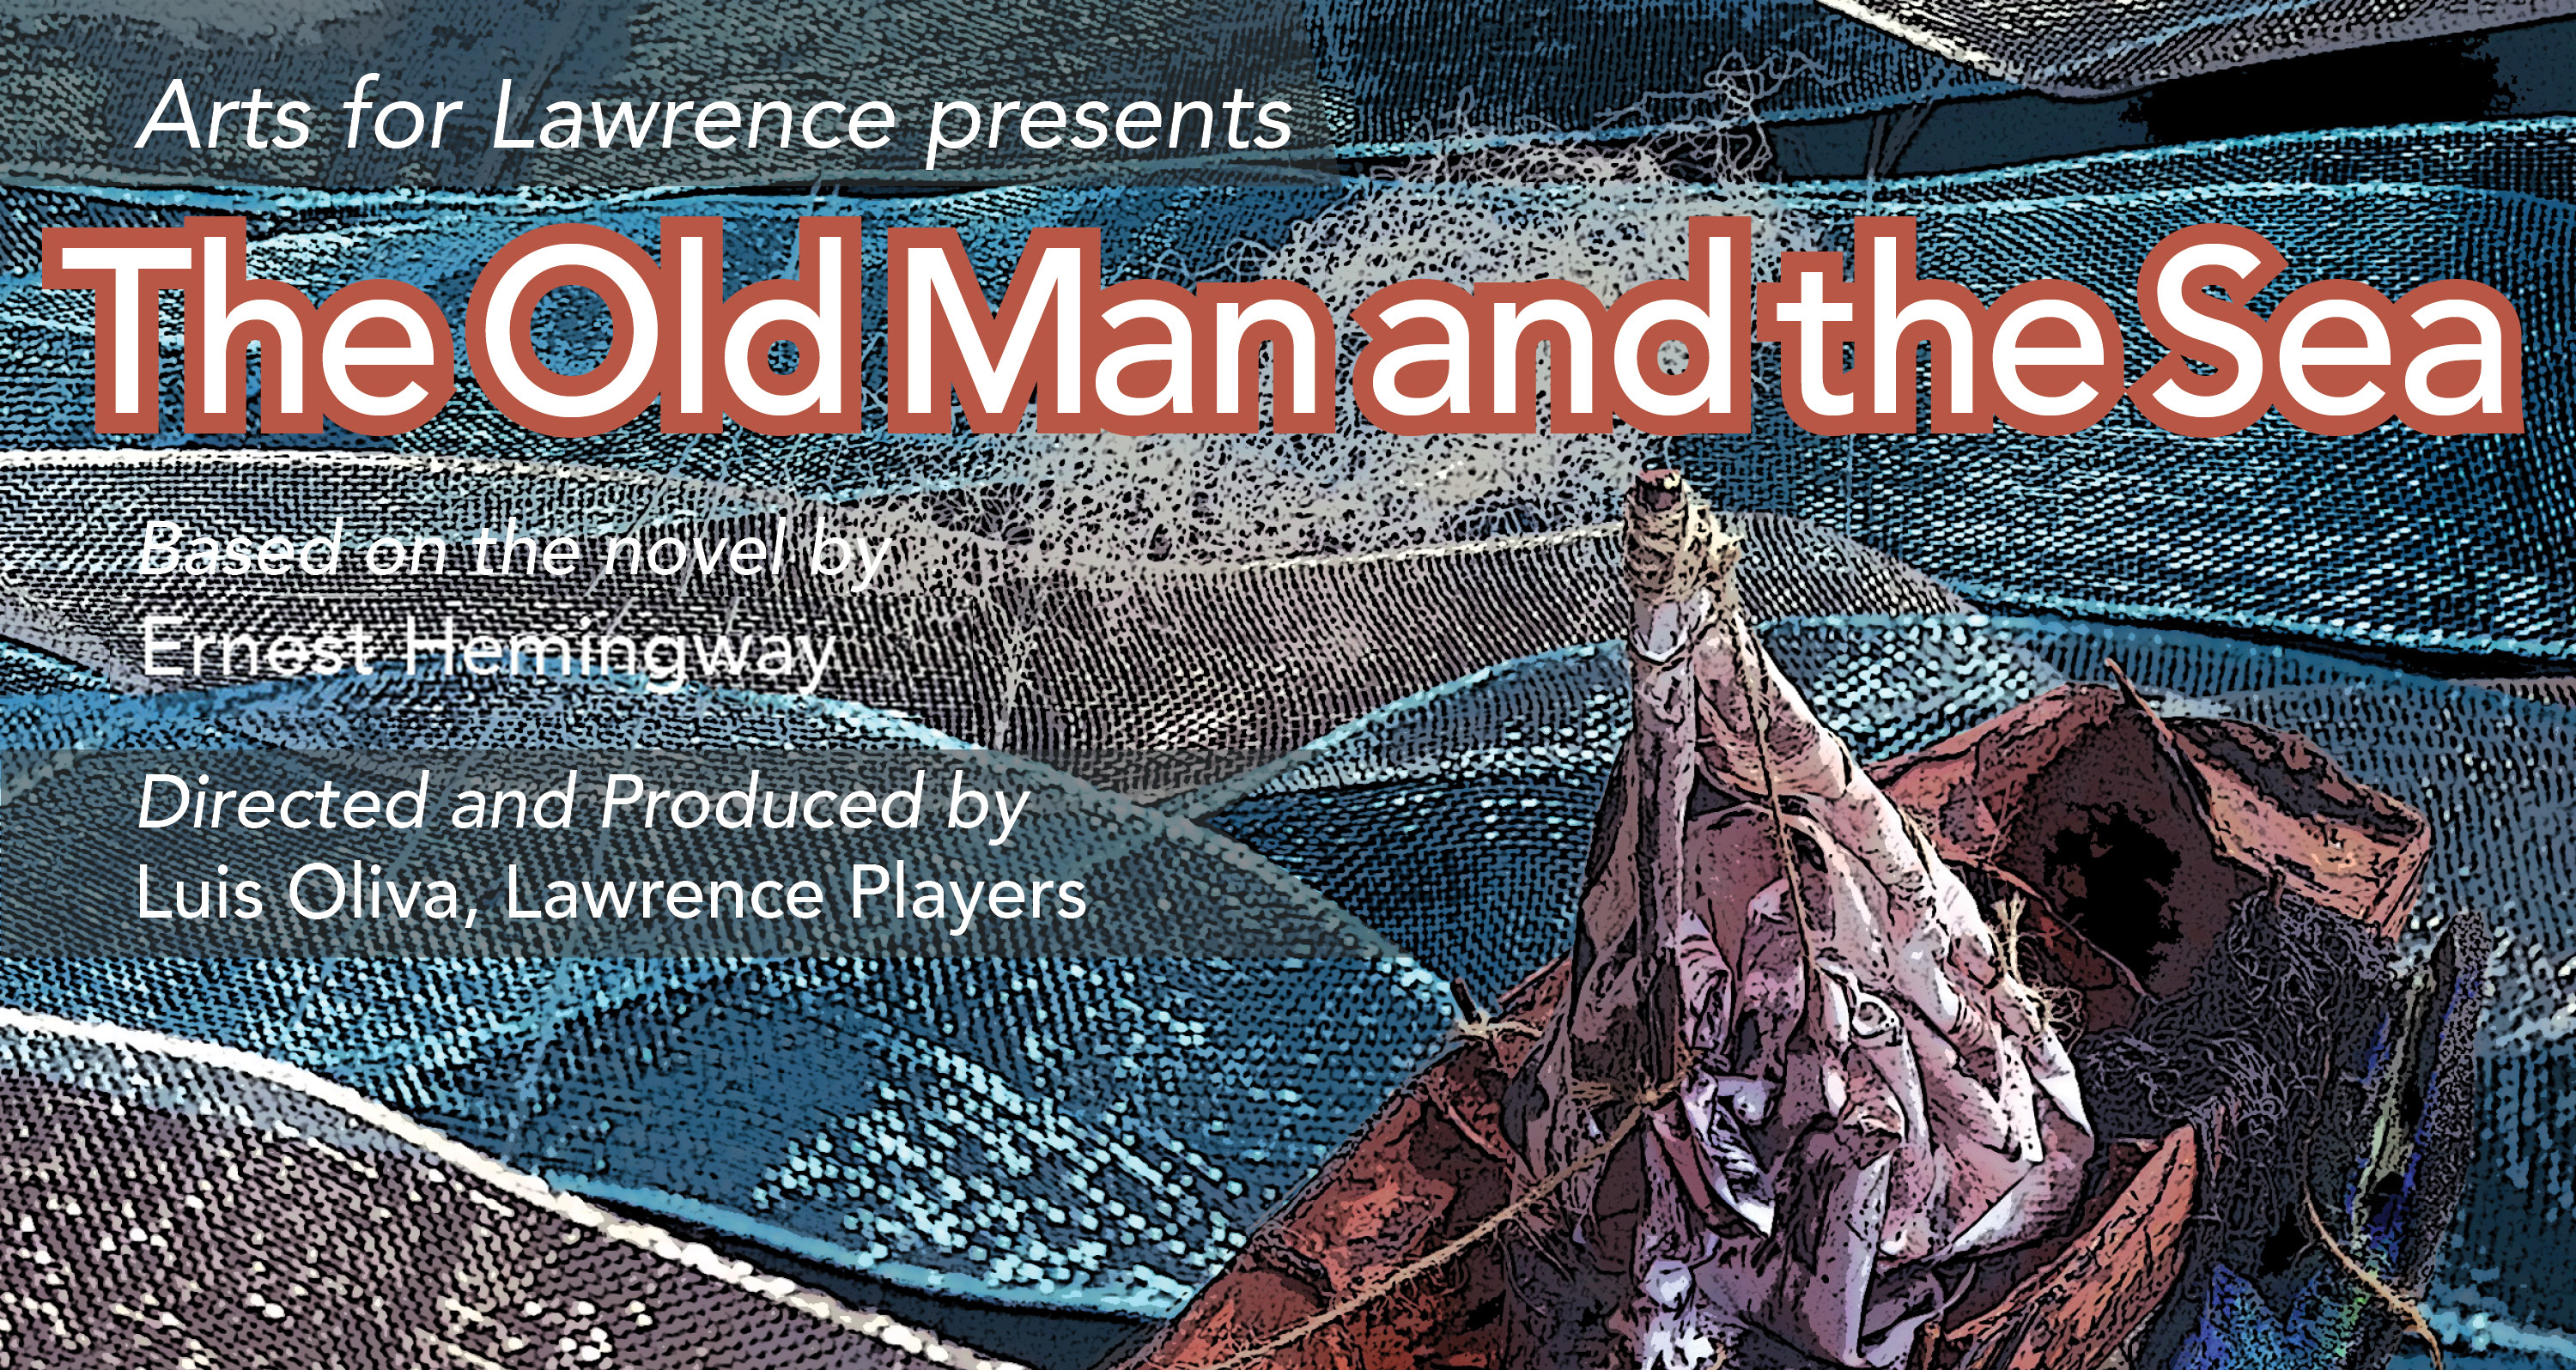 Arts for Lawrence presents The Old Man and the Sea